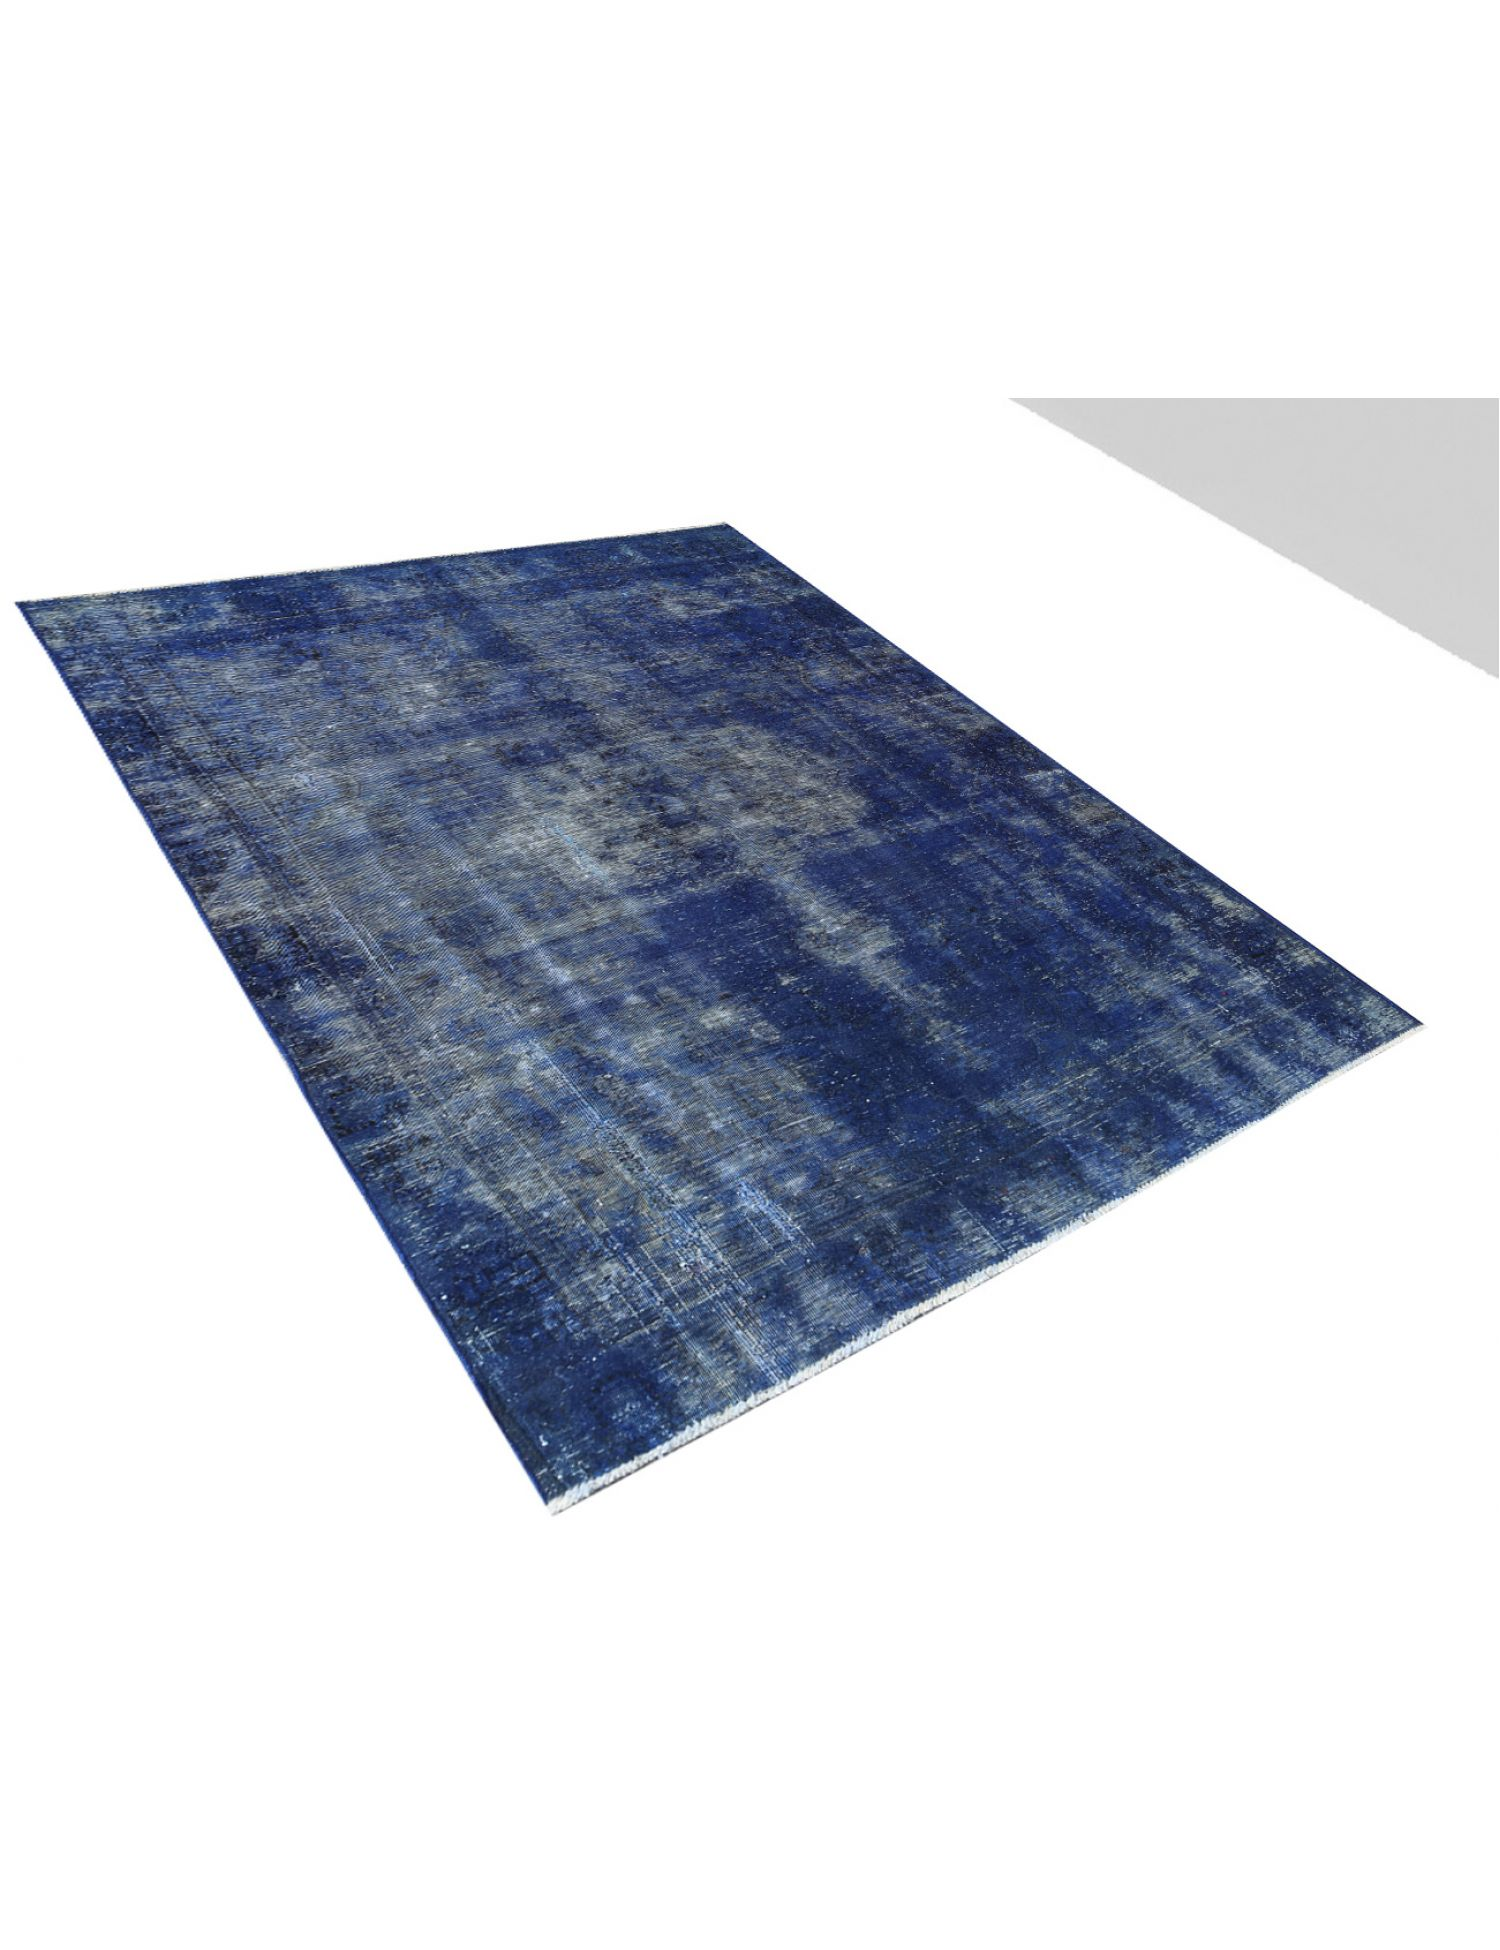 Vintage Carpet  blue <br/>256 x 175 cm